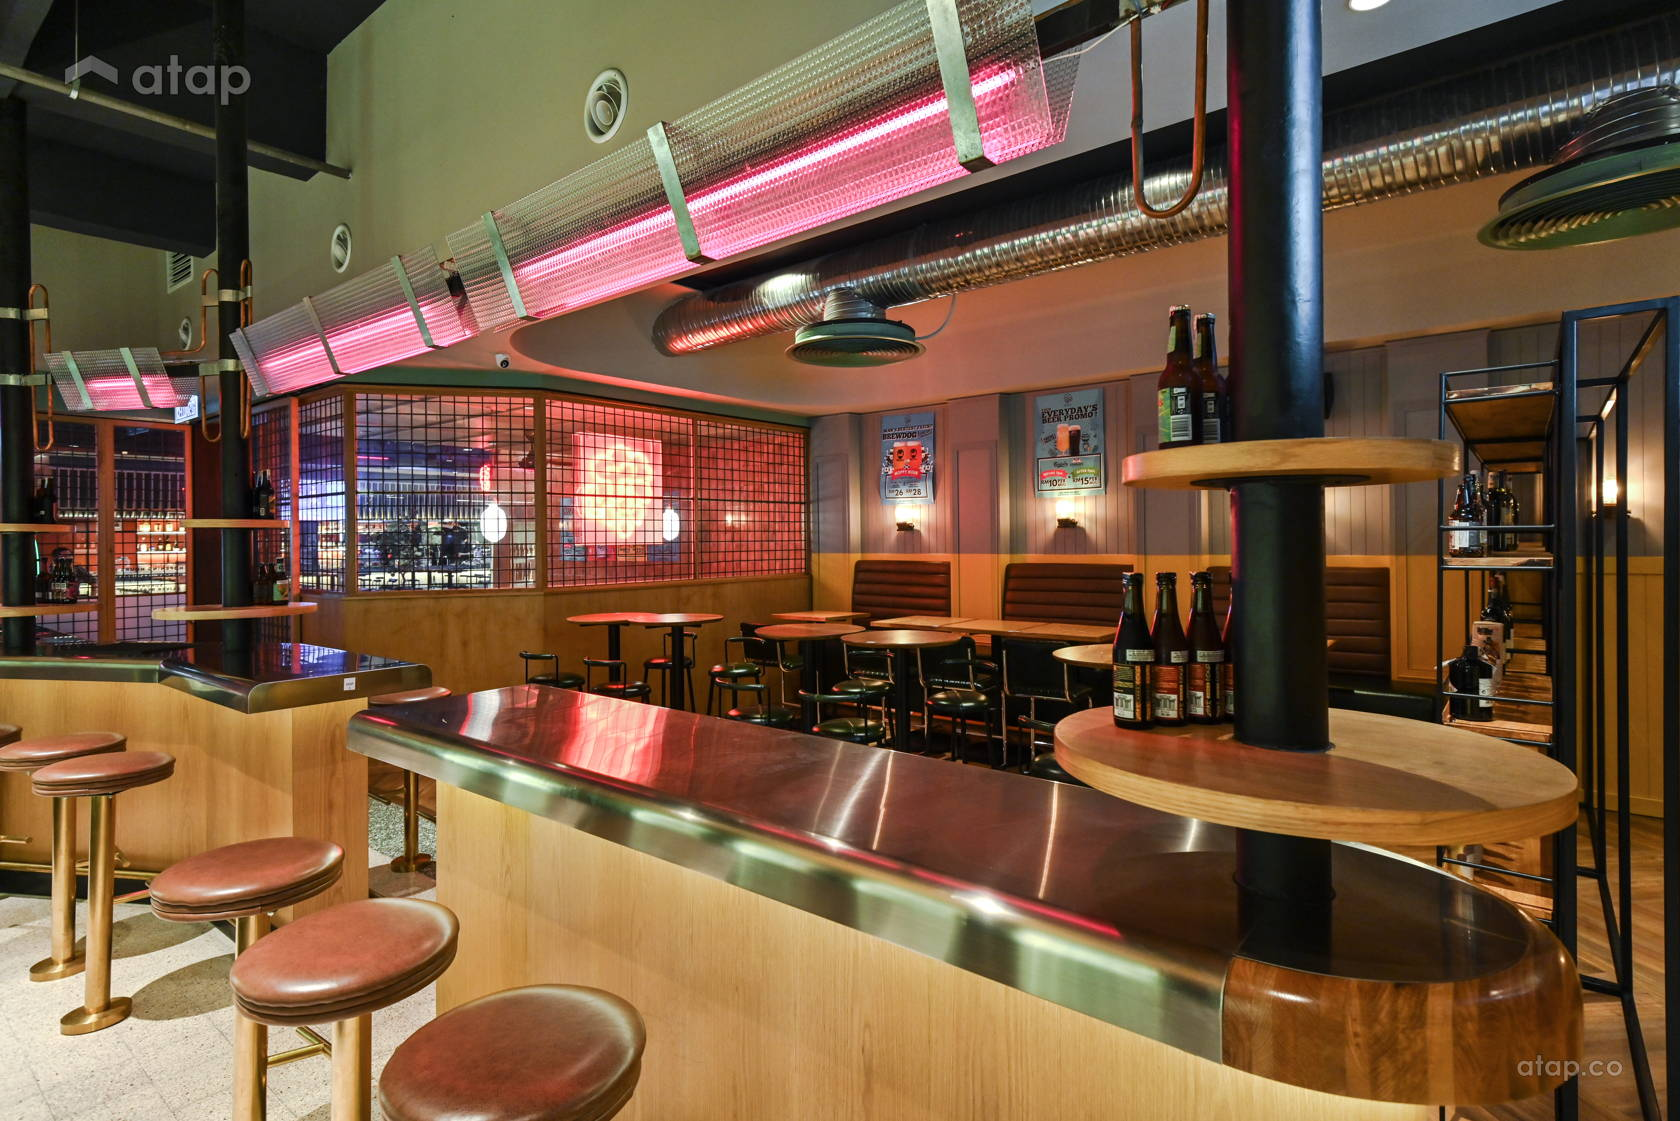 Contemporary Retro F&B @ Hop Beer Bar